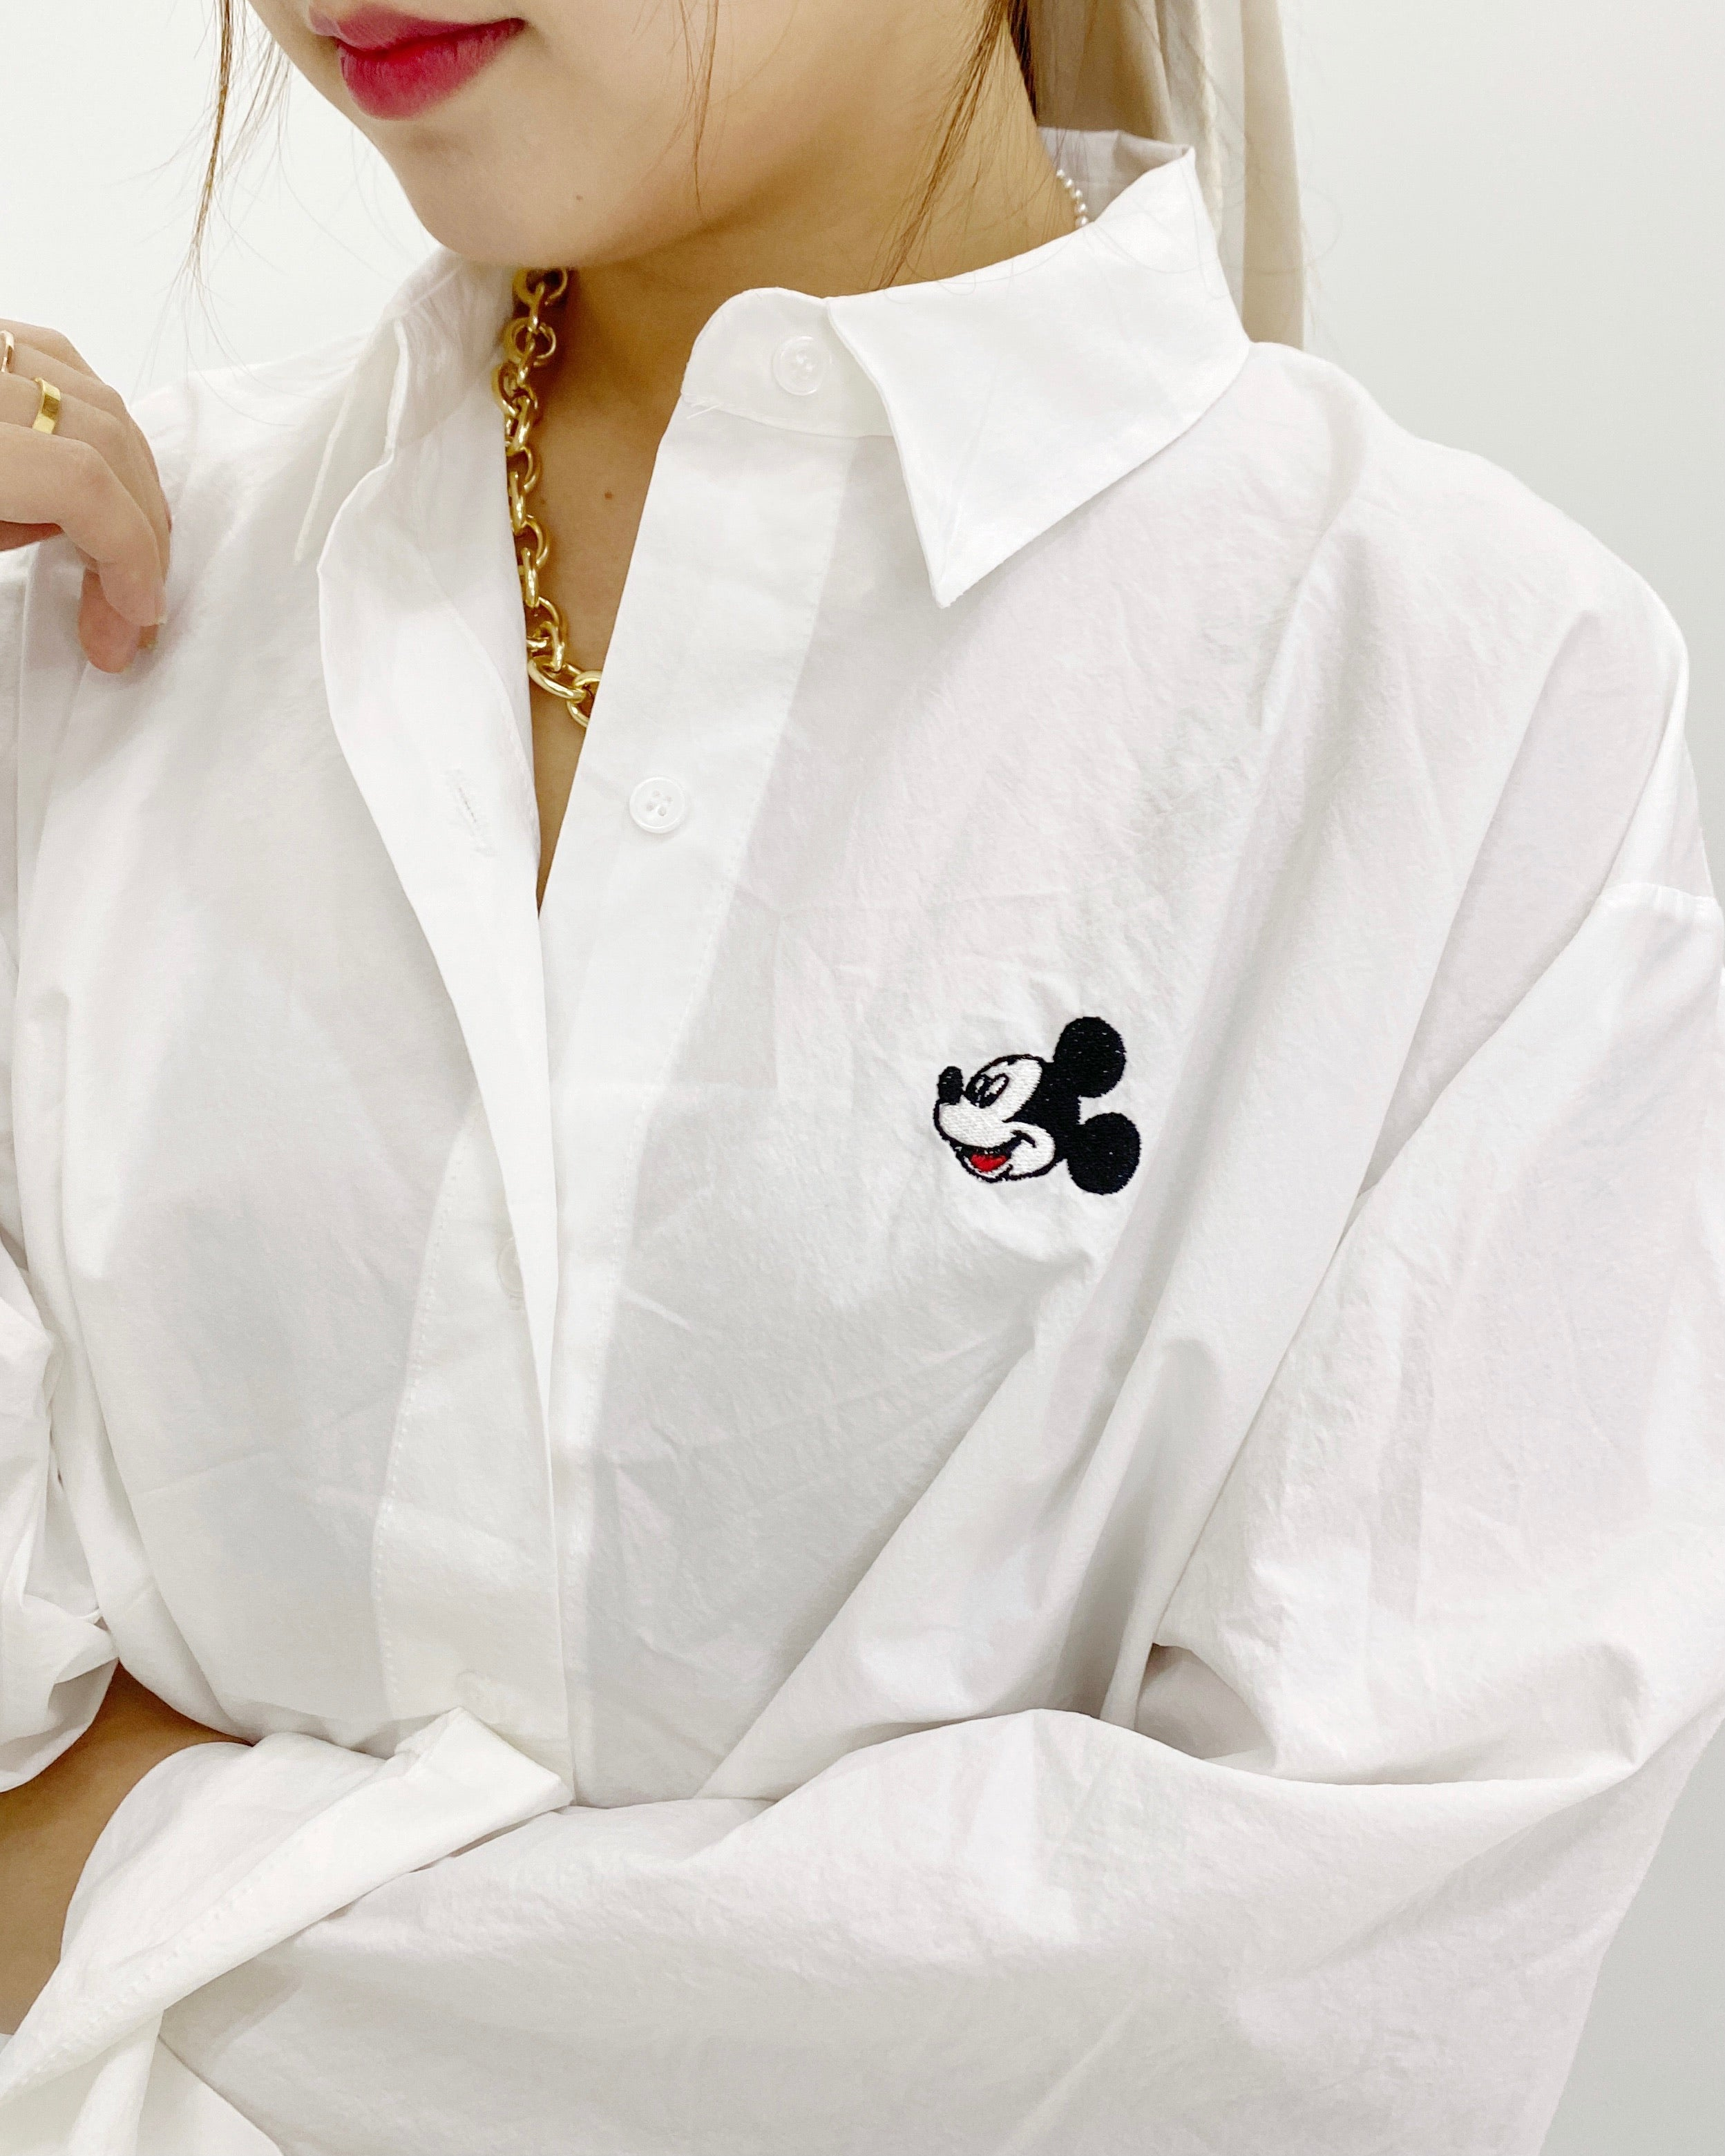 Mickey Mouse Button Down Shirt (White)